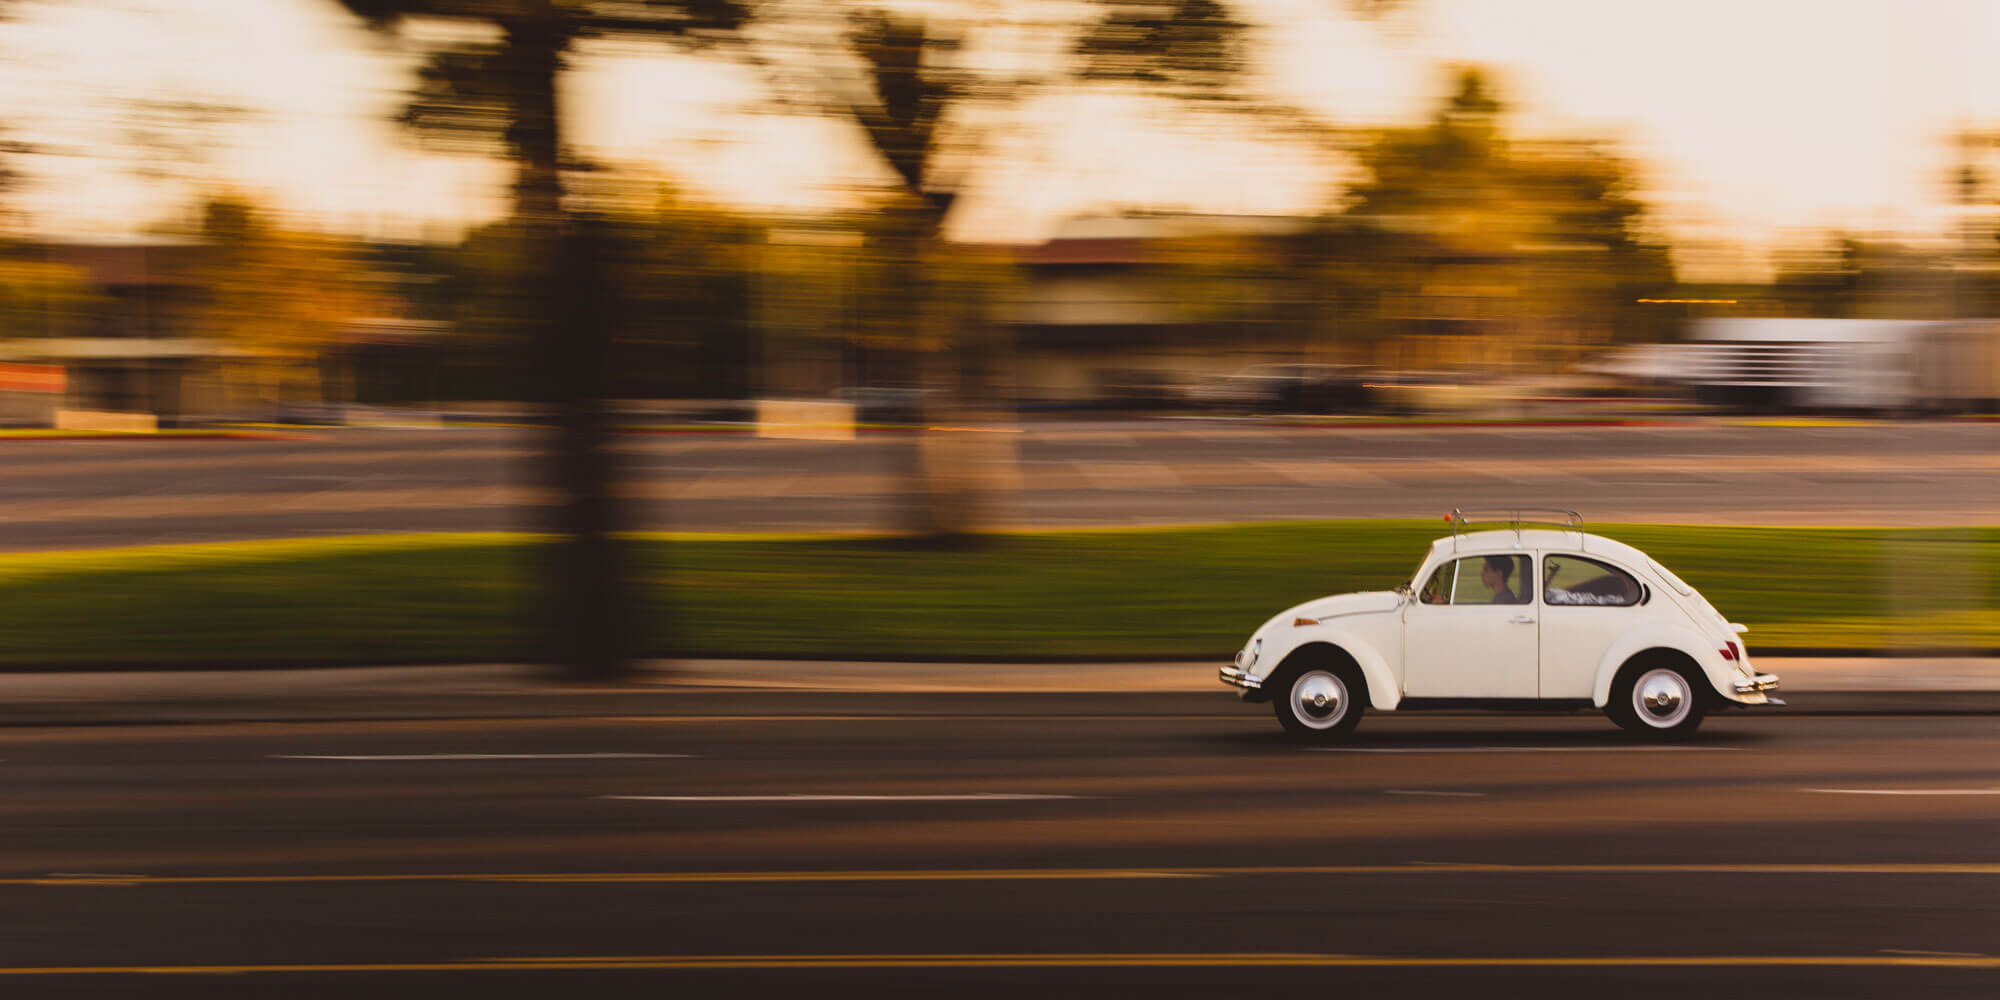 motion blur photography with moving car